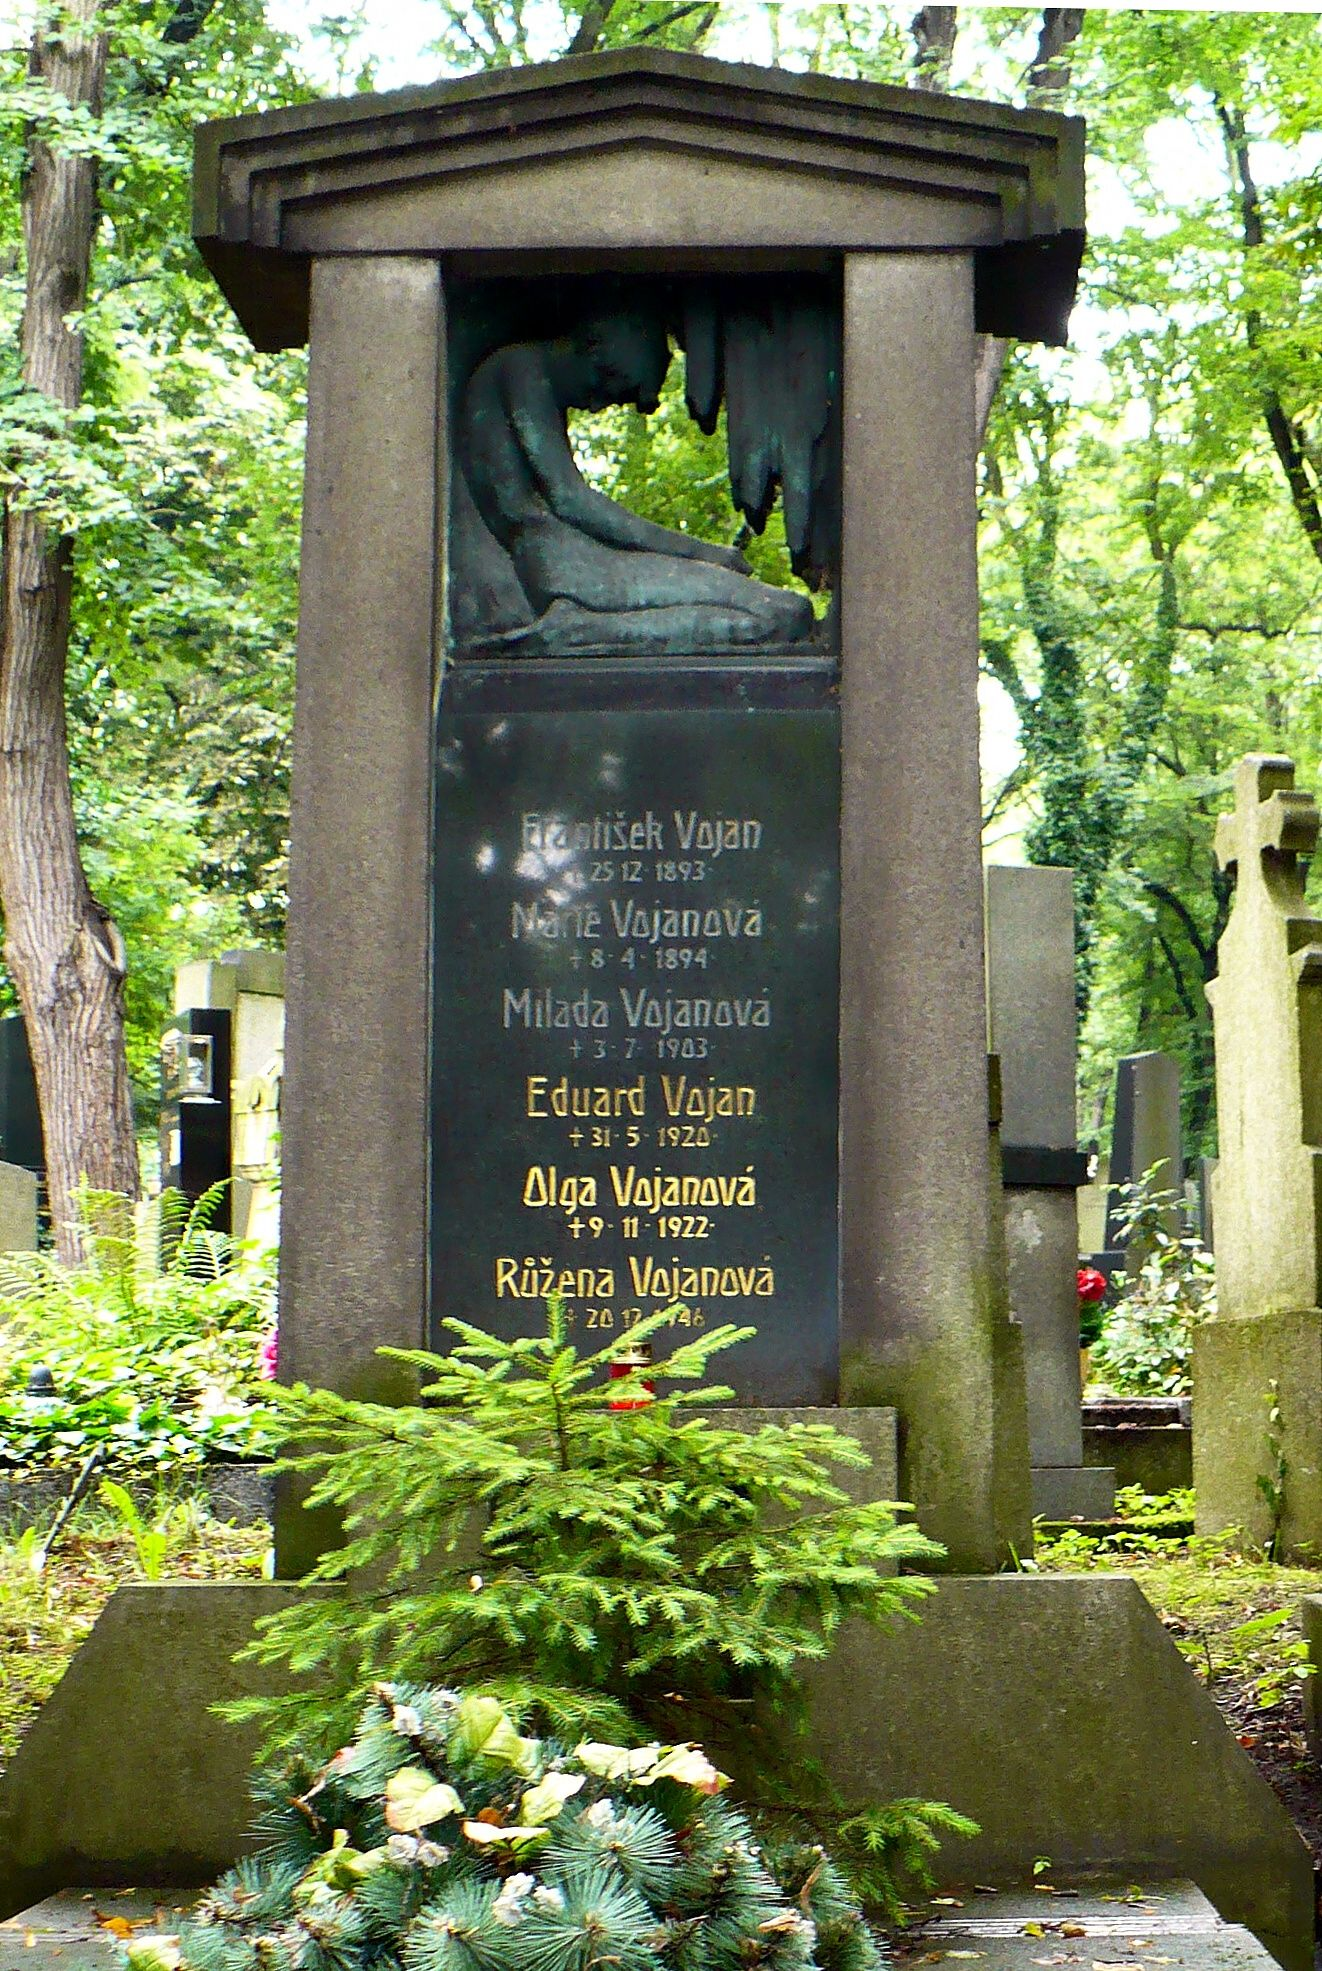 Tomb of Eduard Vojan